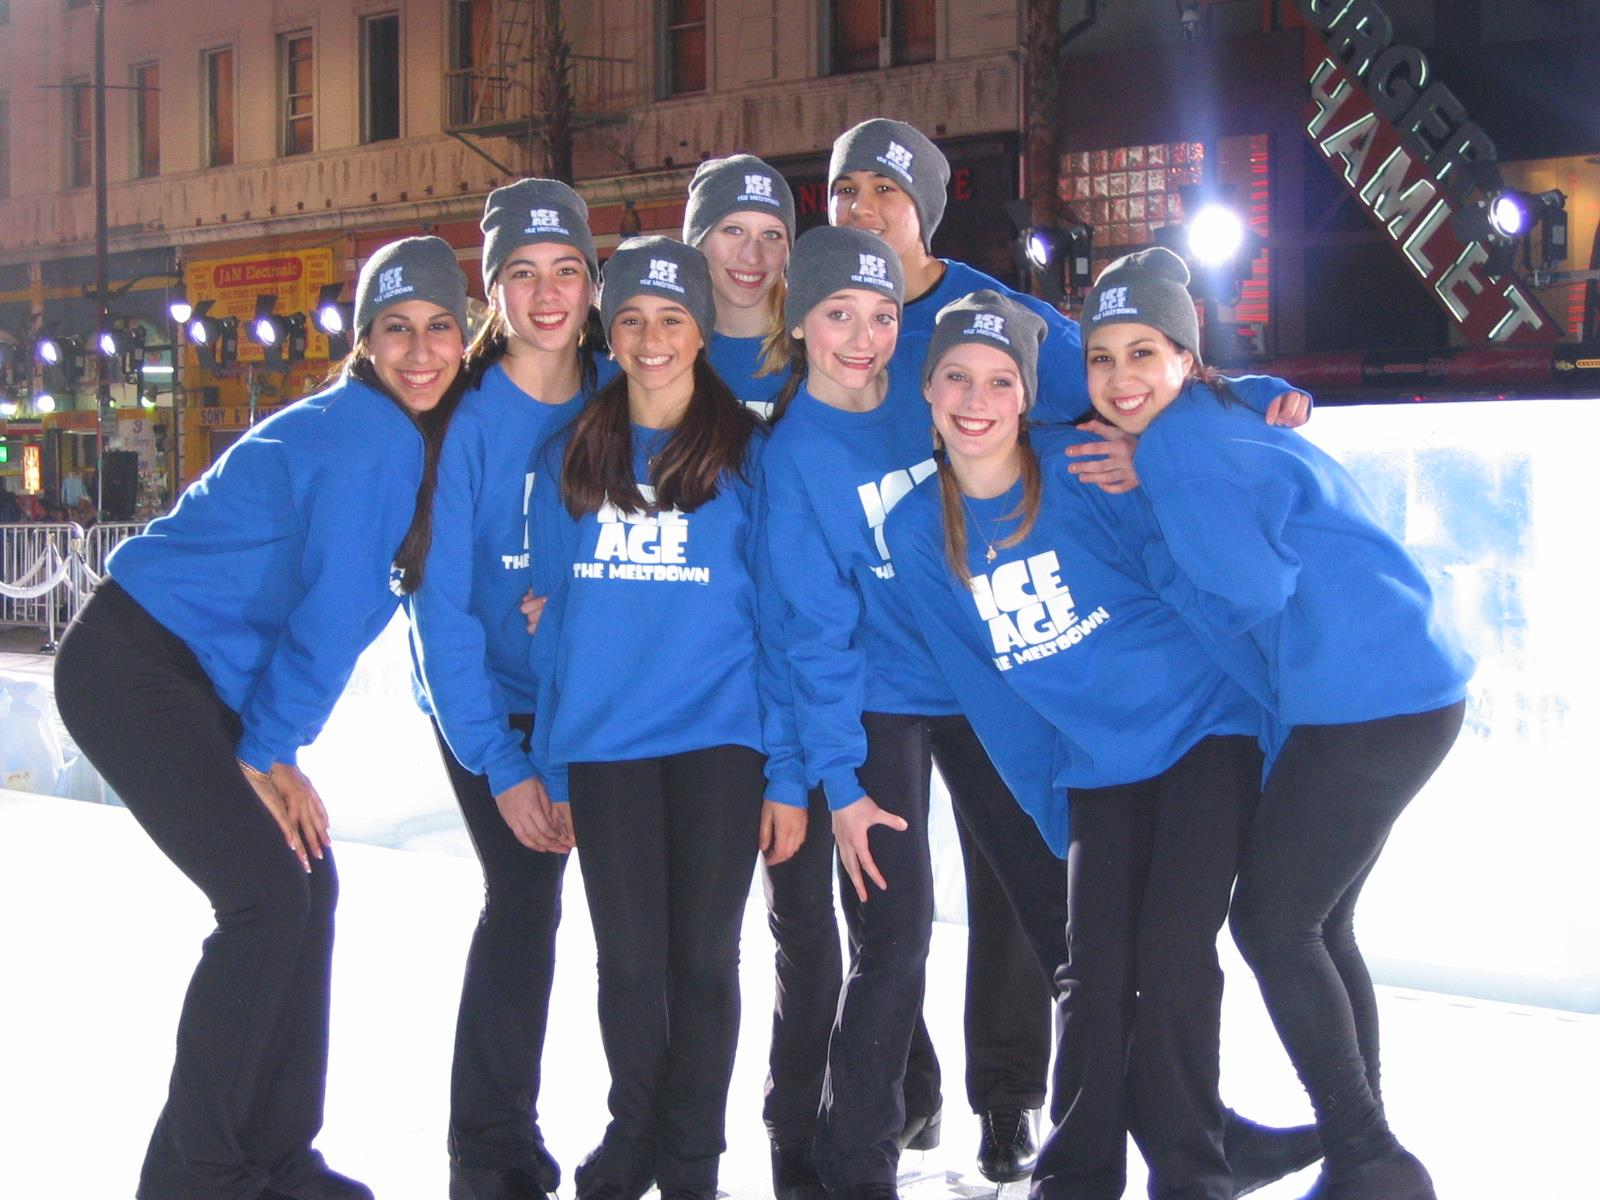 Los Angeles Ice Theater members (left to right) - Melanie Sarhabani, Hayley Soohoo, Krystal Davis, Jessica Perino, Nichole Huenergardt, Brent Mercado, Katie Karp and Renee Valesquez.